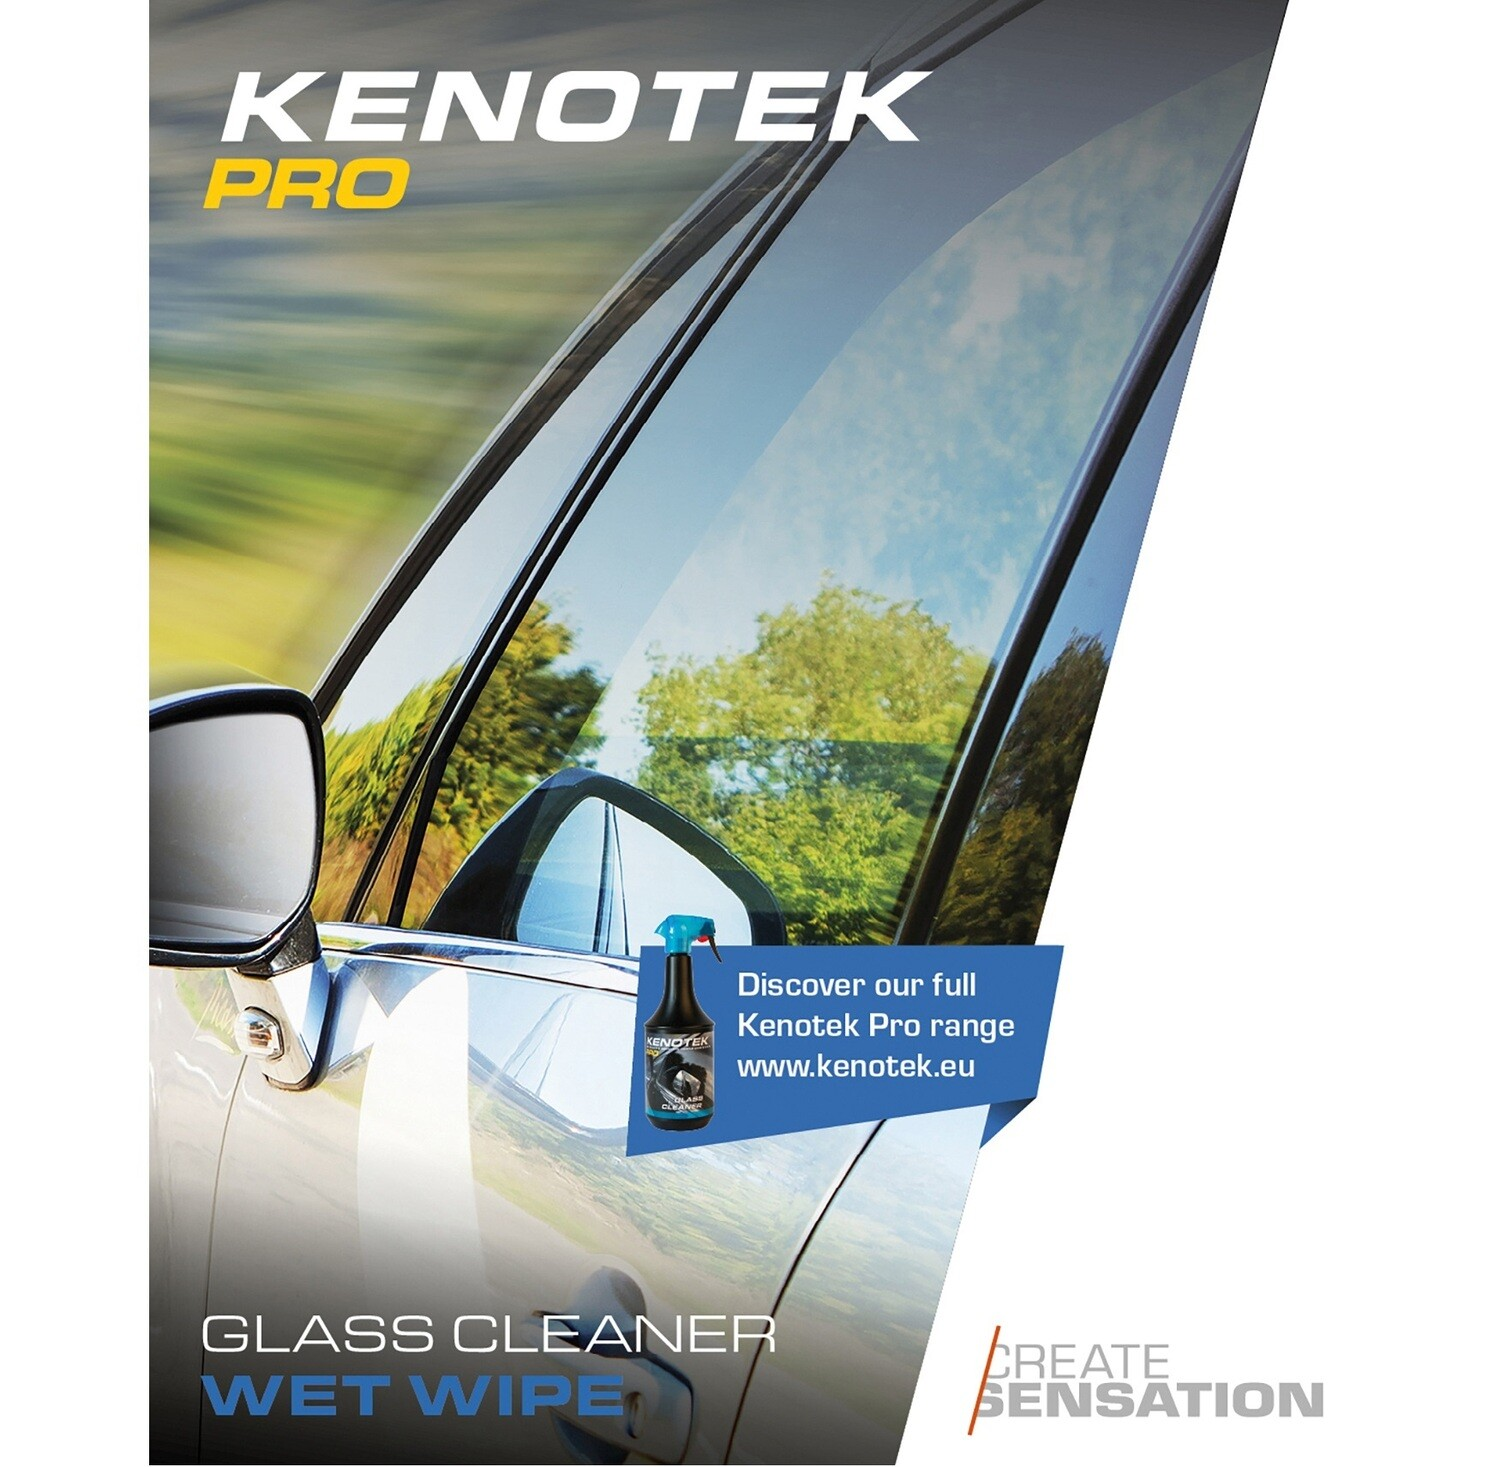 Kenotek Wet-Wipe Glass Cleaner